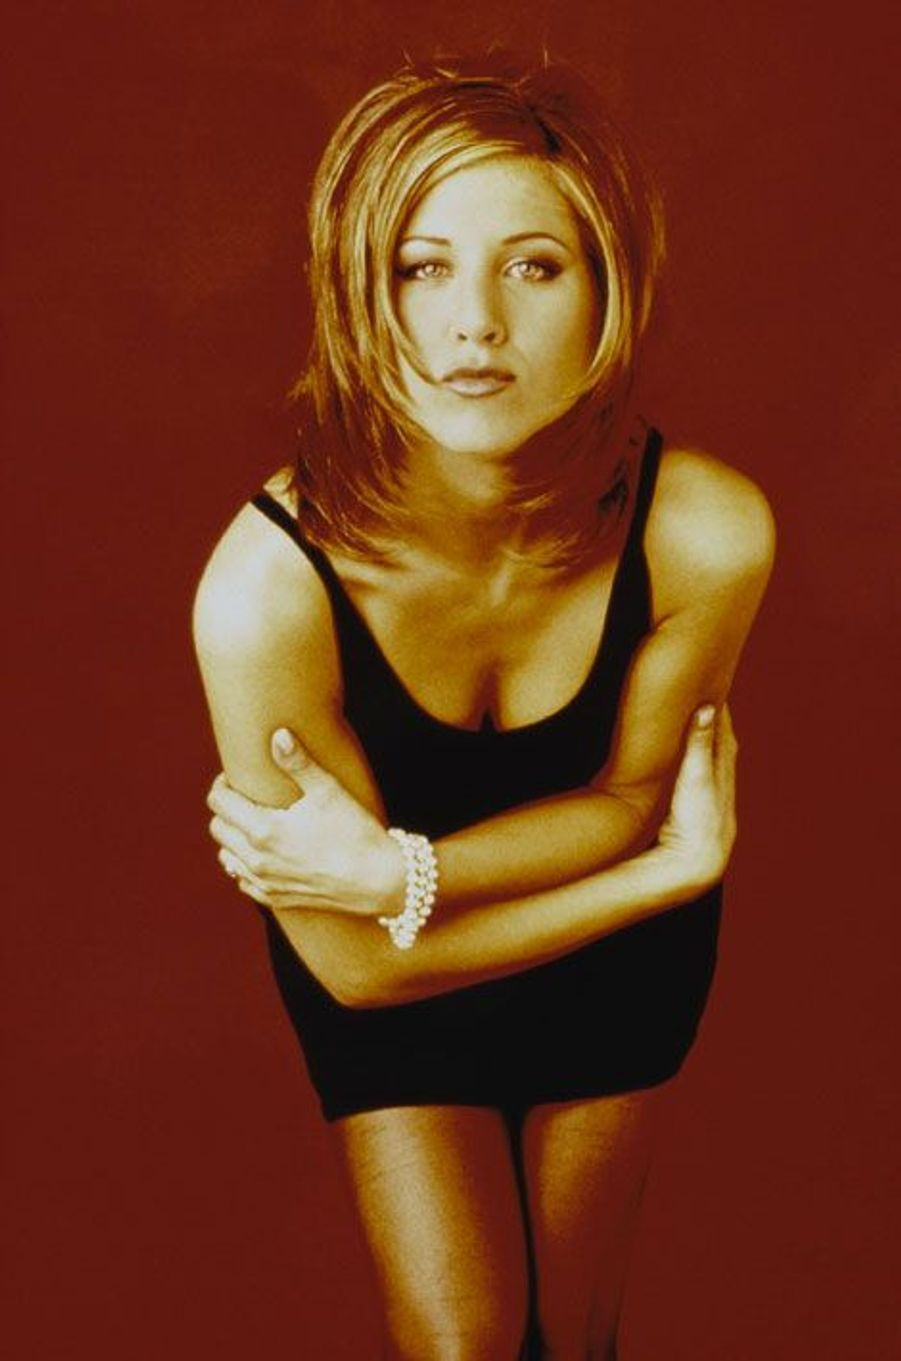 Jennifer Aniston pose pour la série Friends